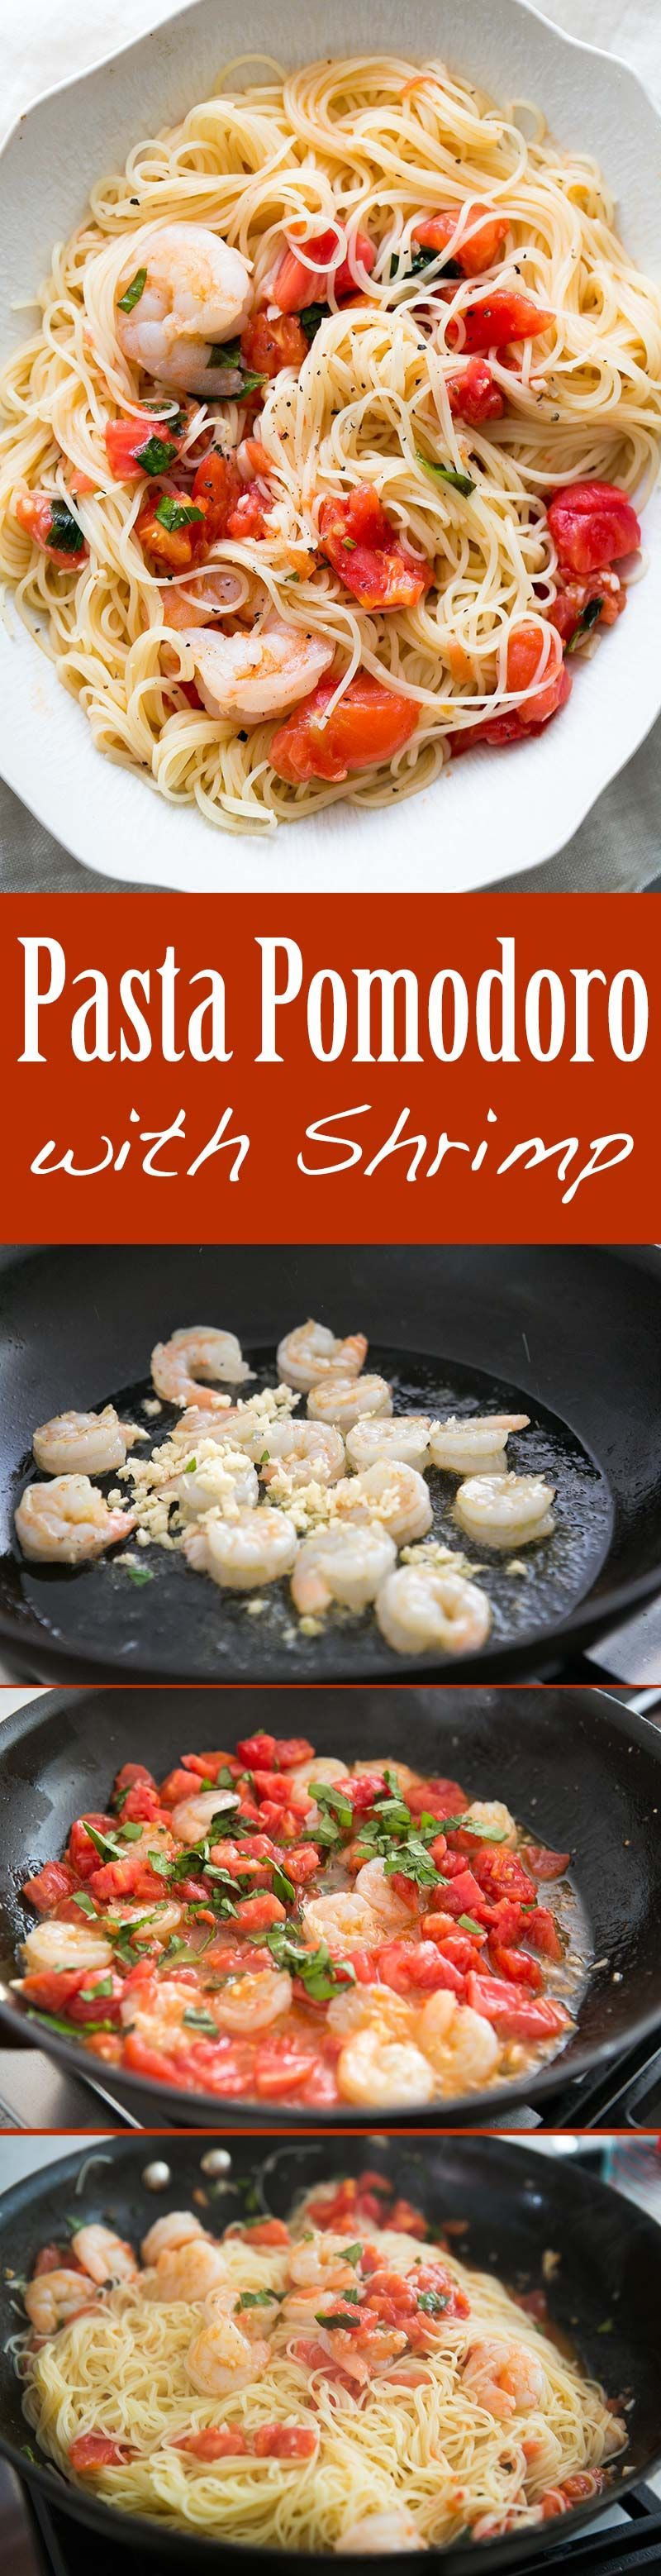 So Quick And Easy Angel Hair Pasta Tossed With Sauteed Shrimp